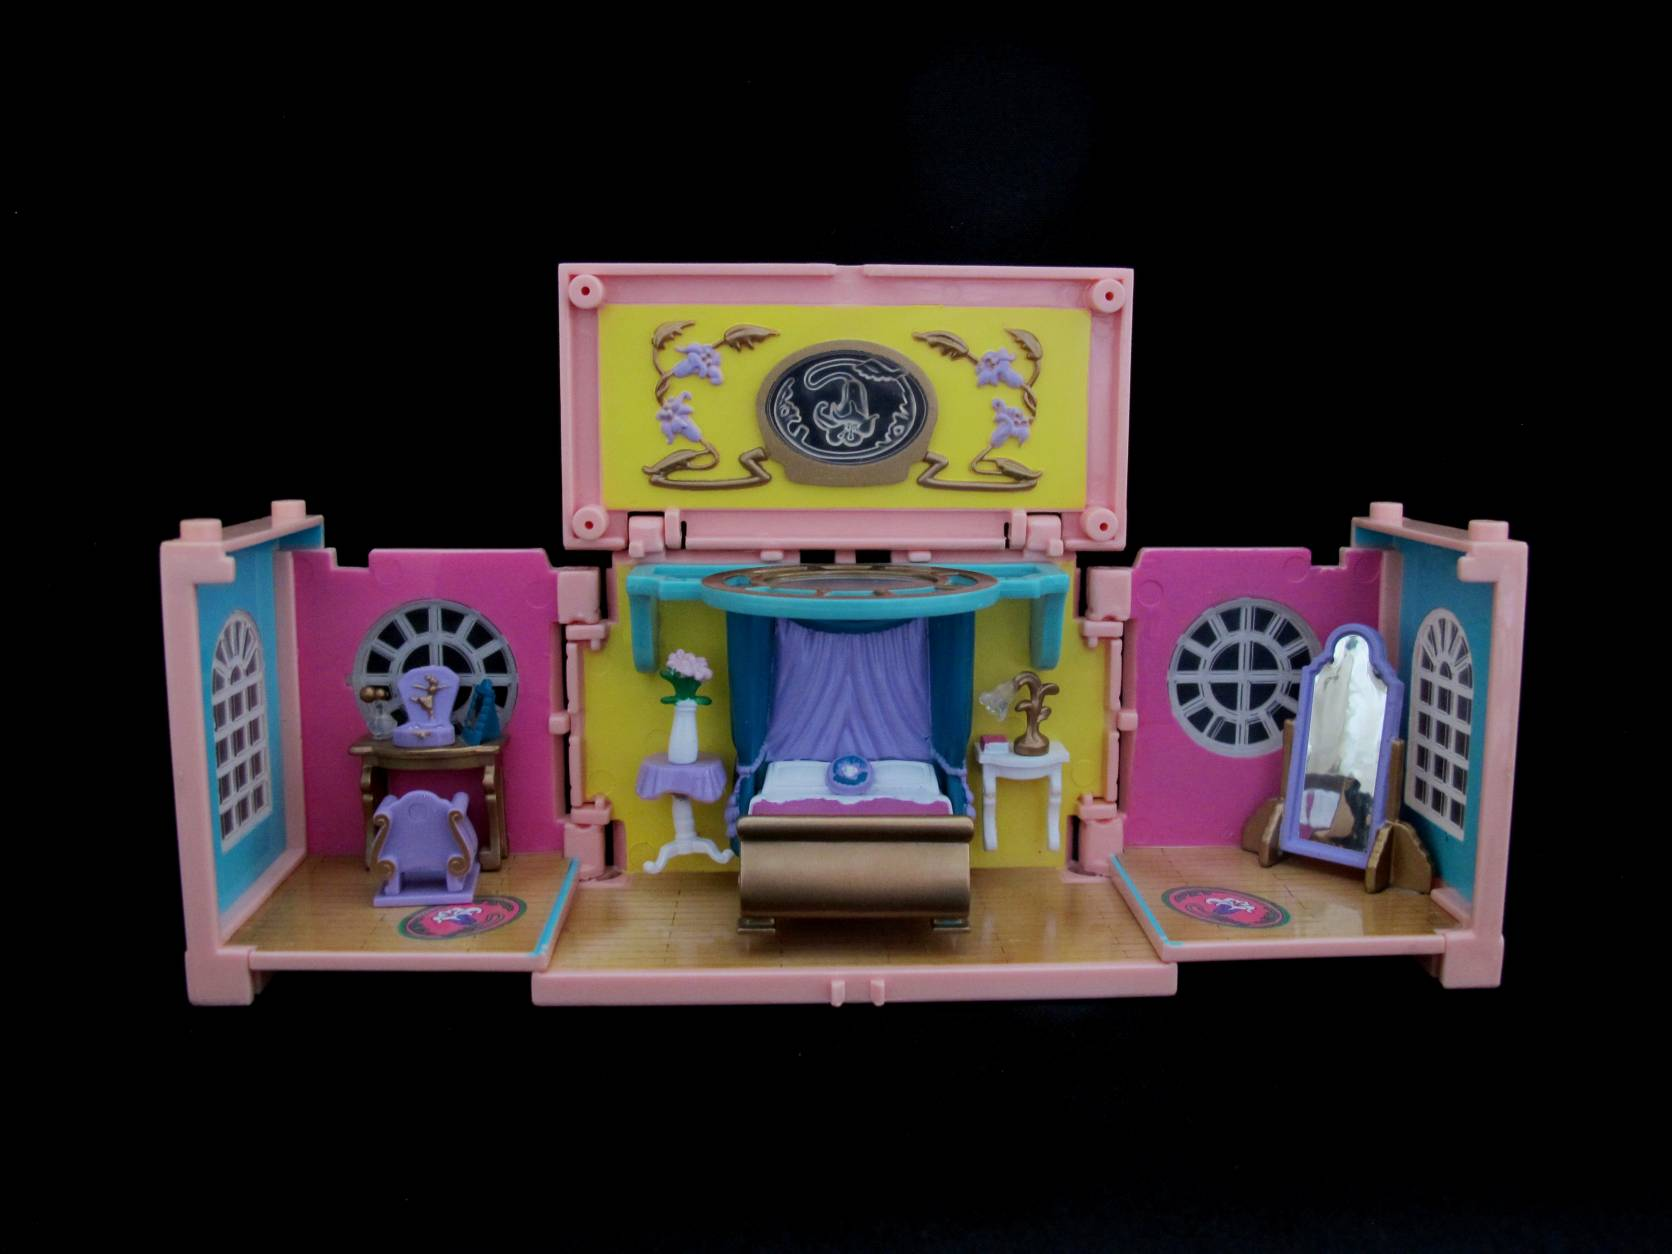 1999 Polly Pocket Dreambuilders Deluxe Mansion Bedroom